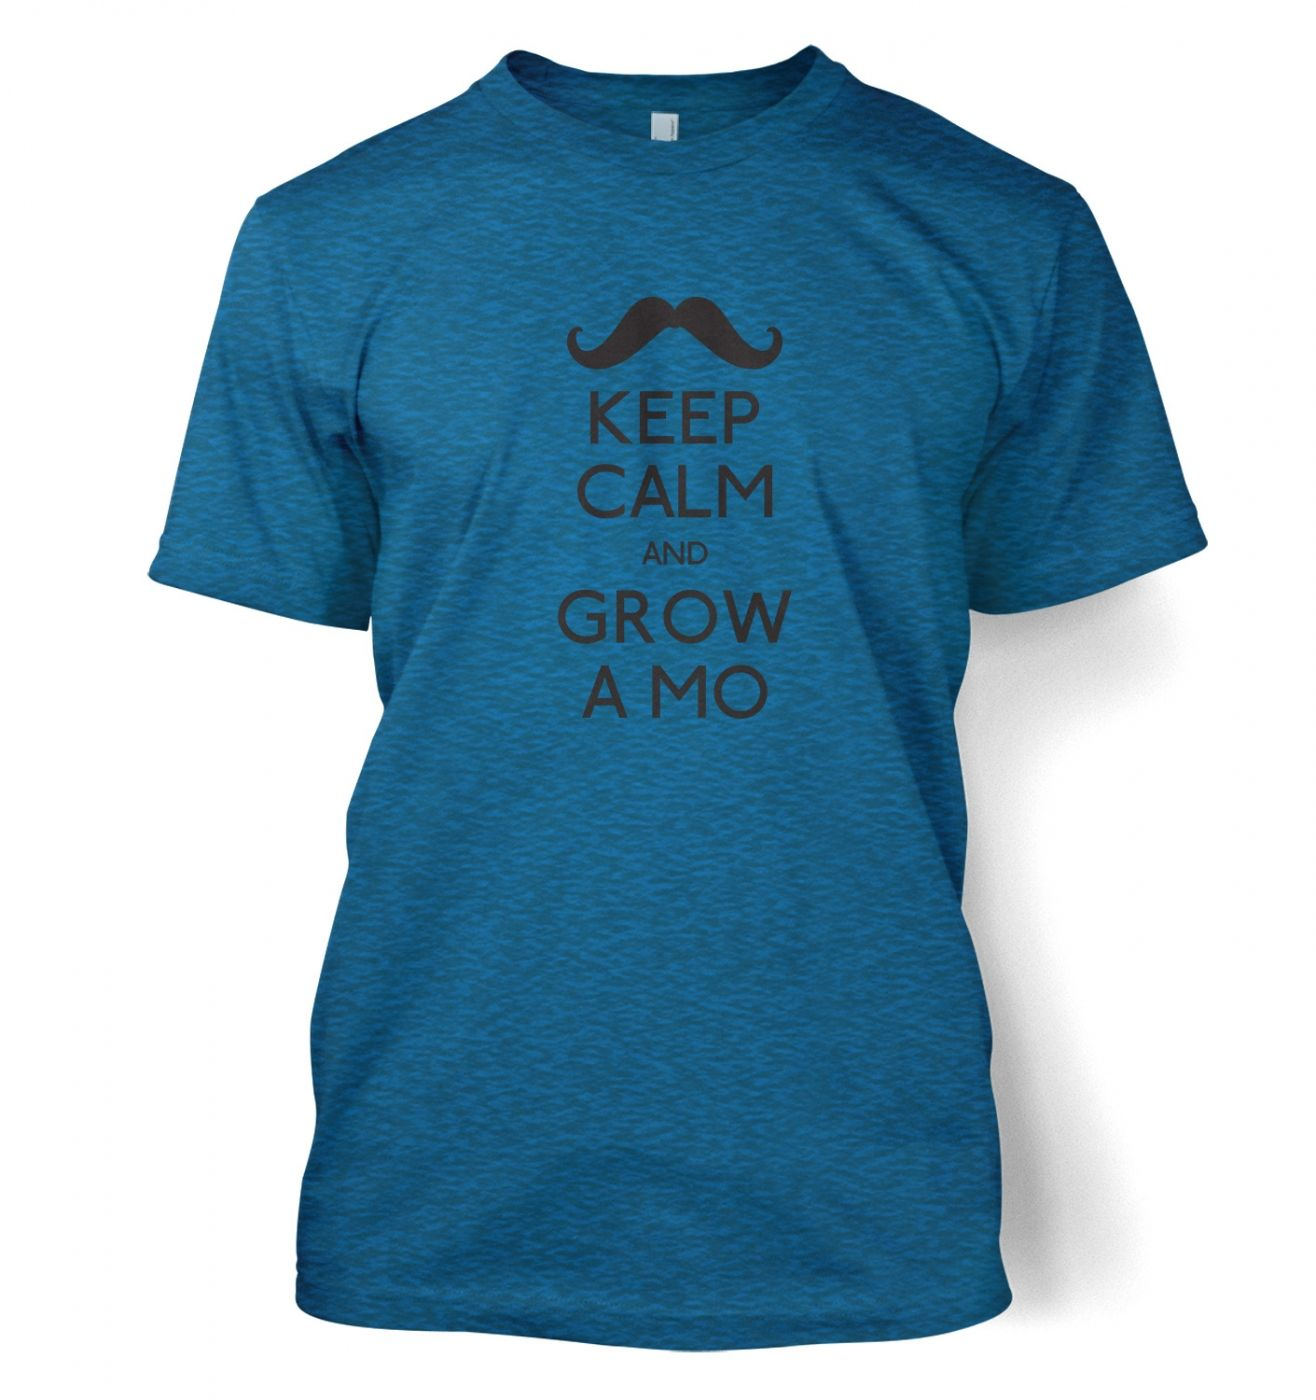 Keep Calm and Grow a Mo  t-shirt